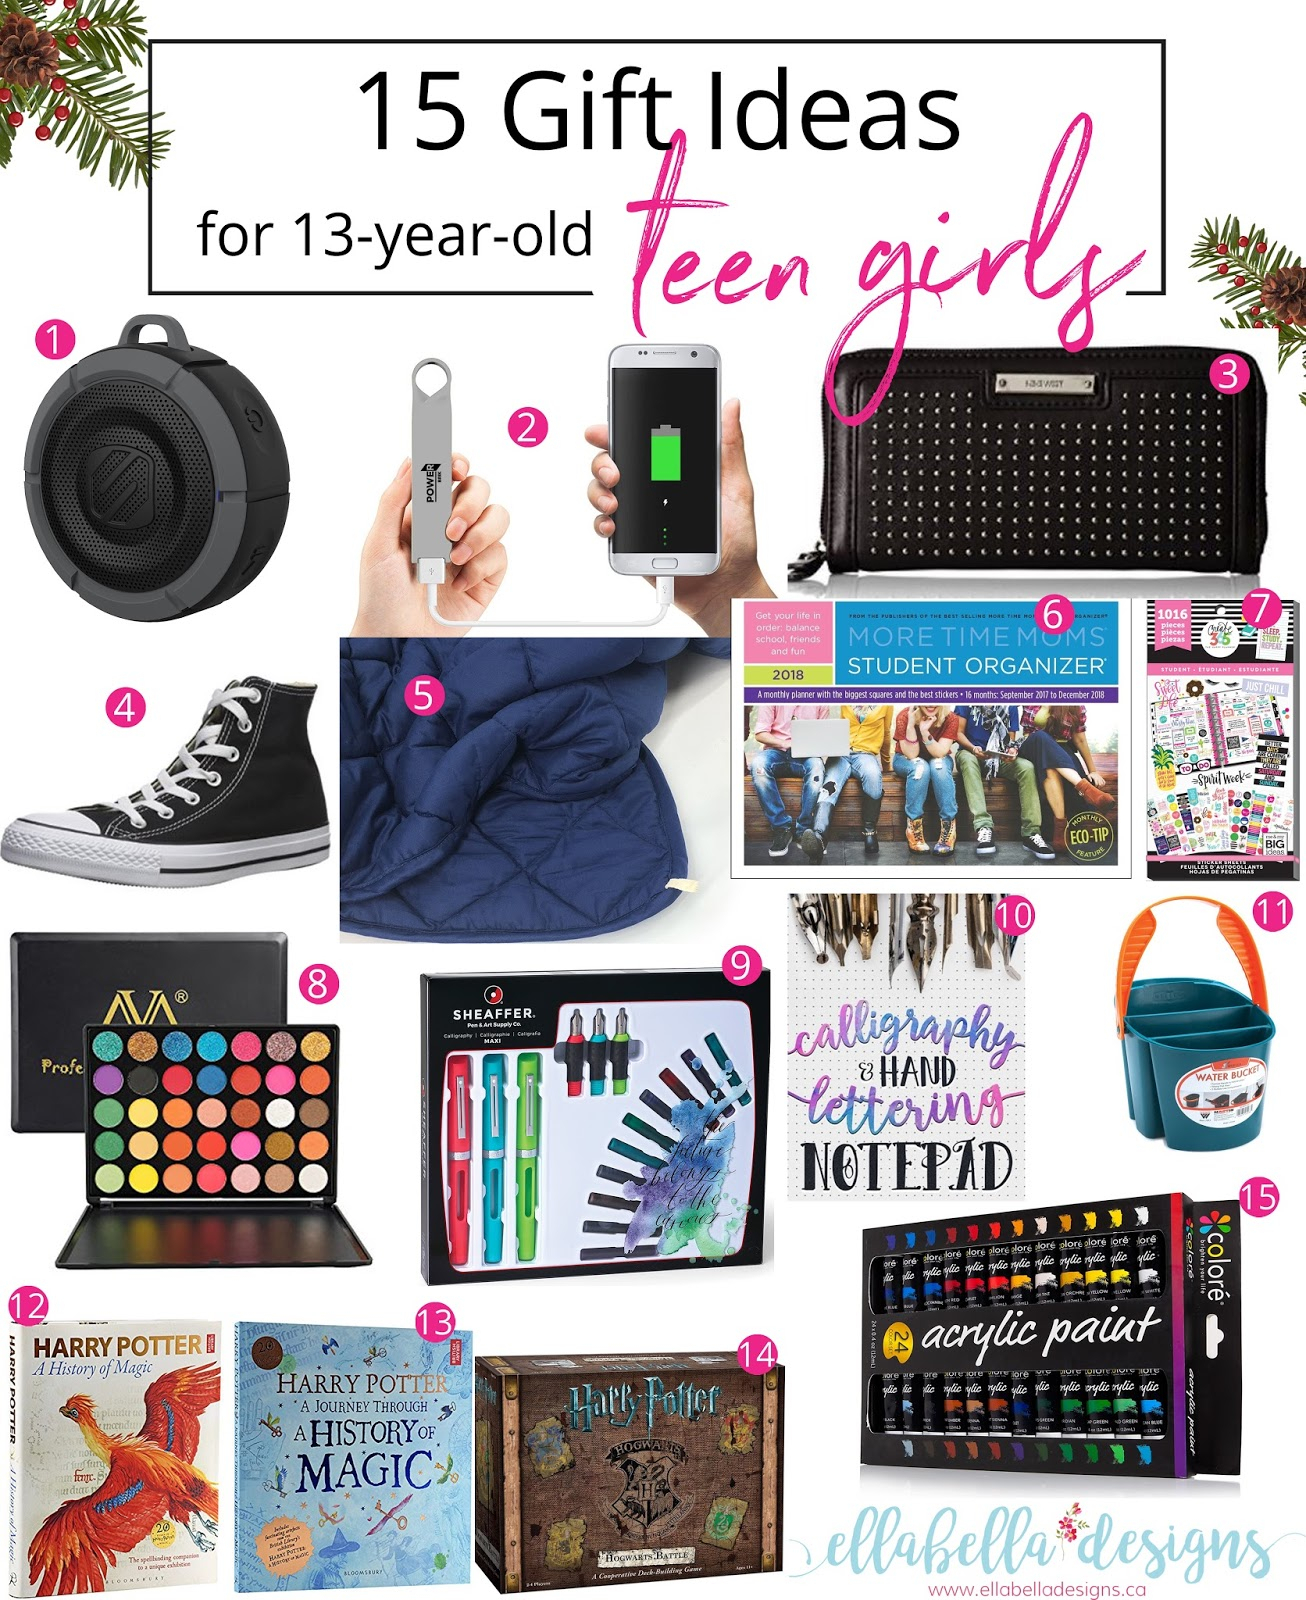 10 Elegant Gift Ideas For A 13 Year Old 13th birthday gift ideas for daughter gift ideas 2020